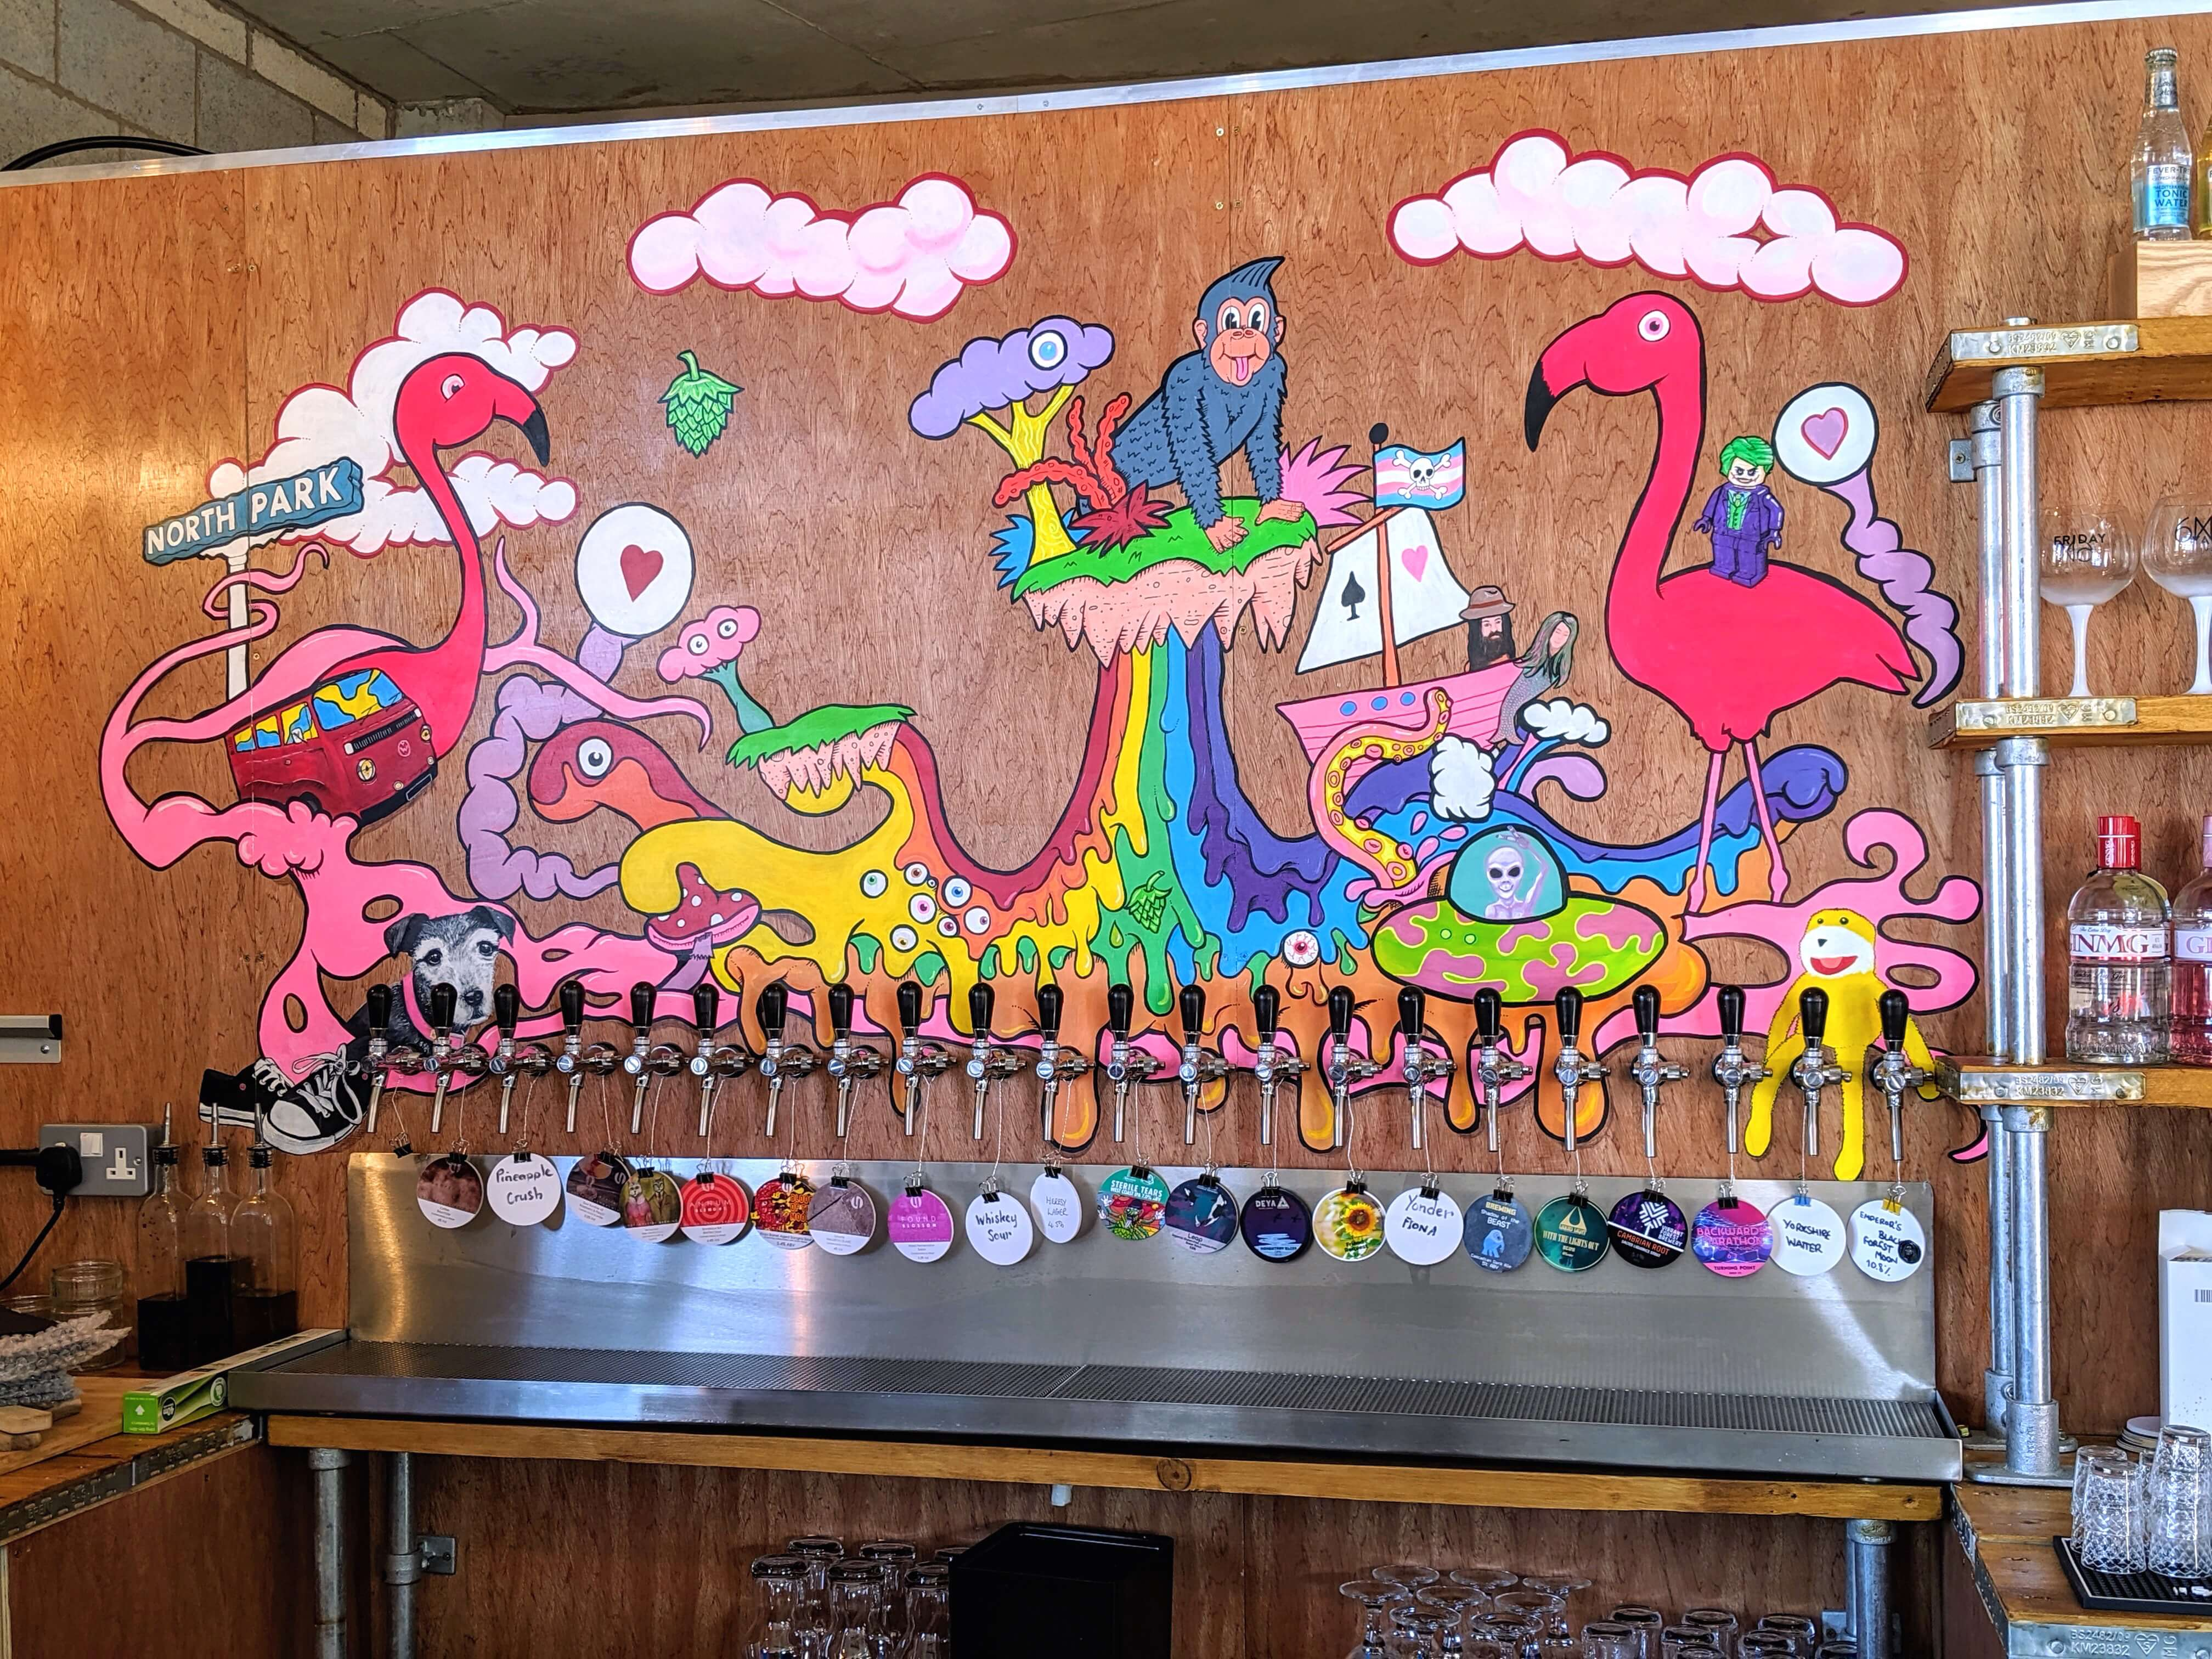 Colourful artwork at Lost Industry Tap Room - A great place to enjoy local Sheffield beer